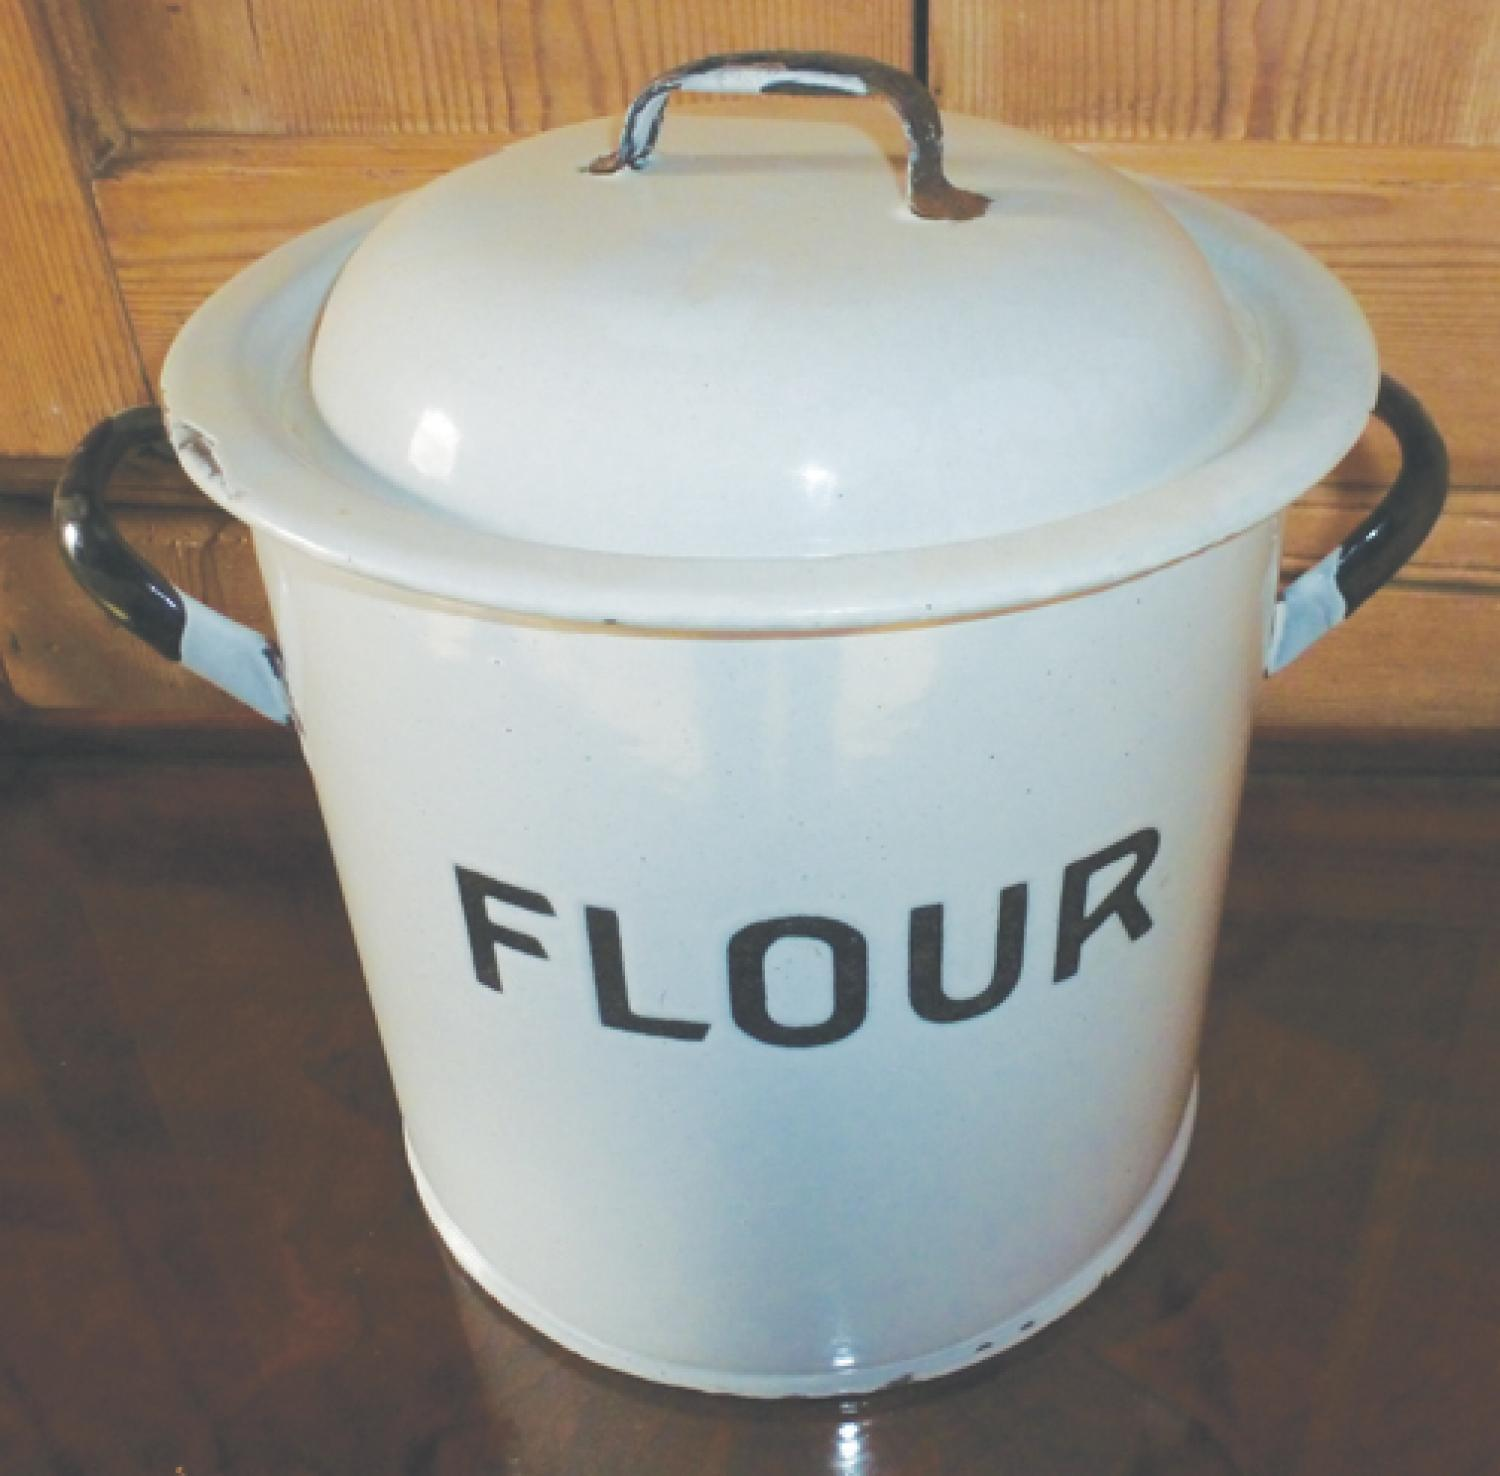 VINTAGE ENAMEL FLOUR BIN in THE ANTIQUE KITCHEN